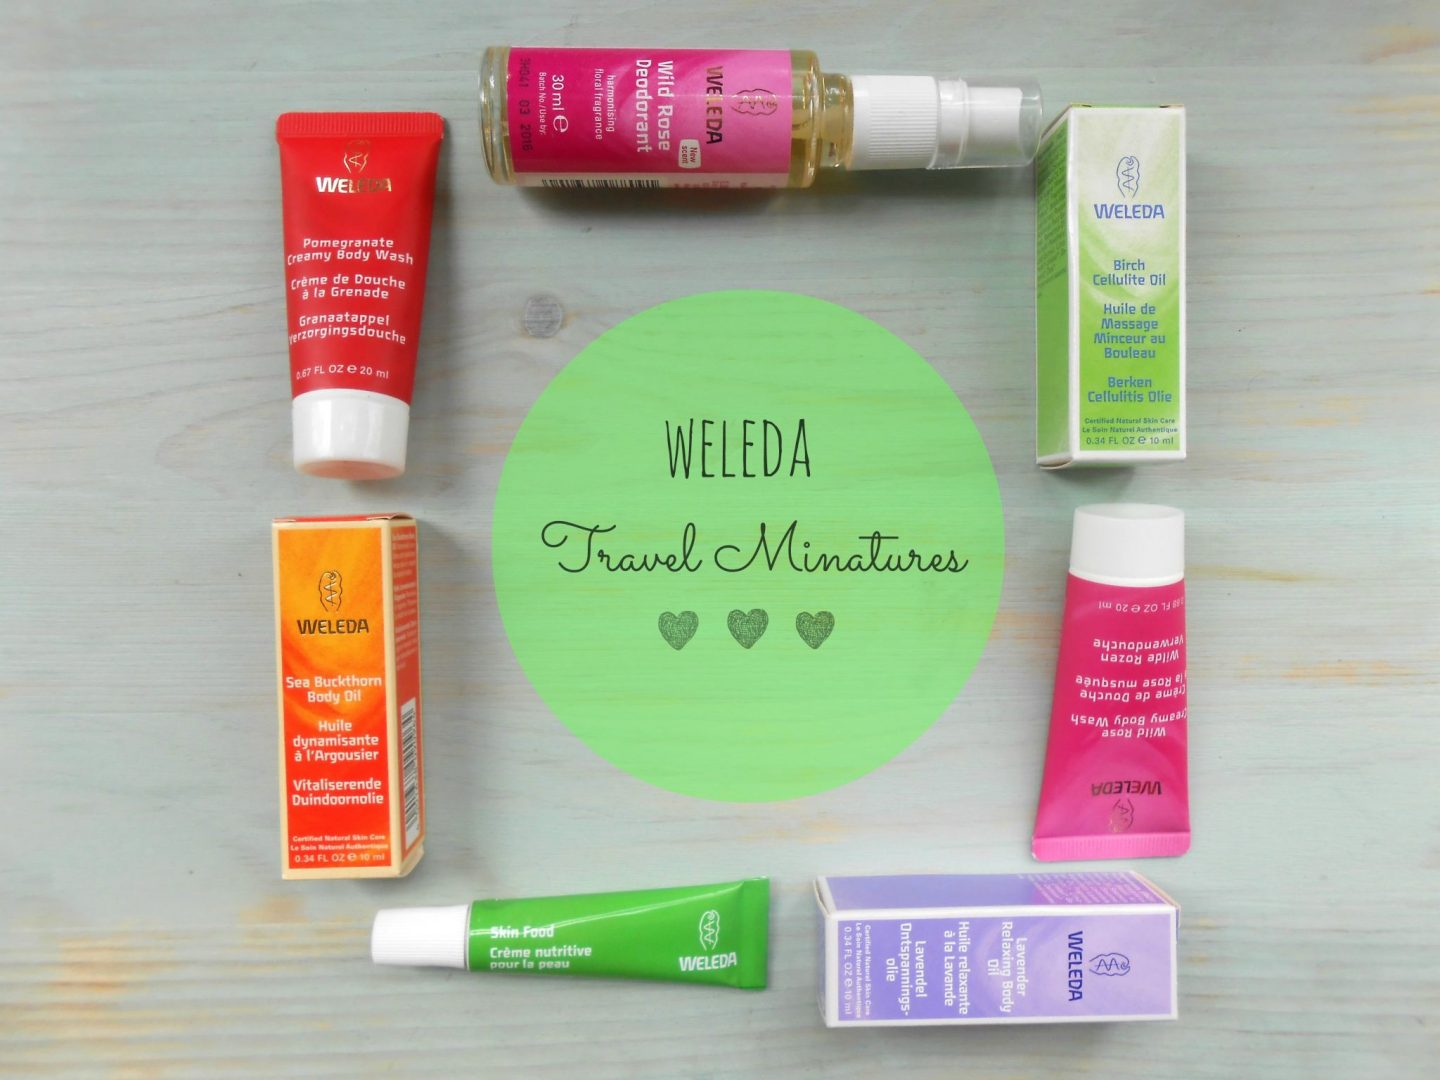 Weleda travel sizes, weleda skincare, weleda skin food